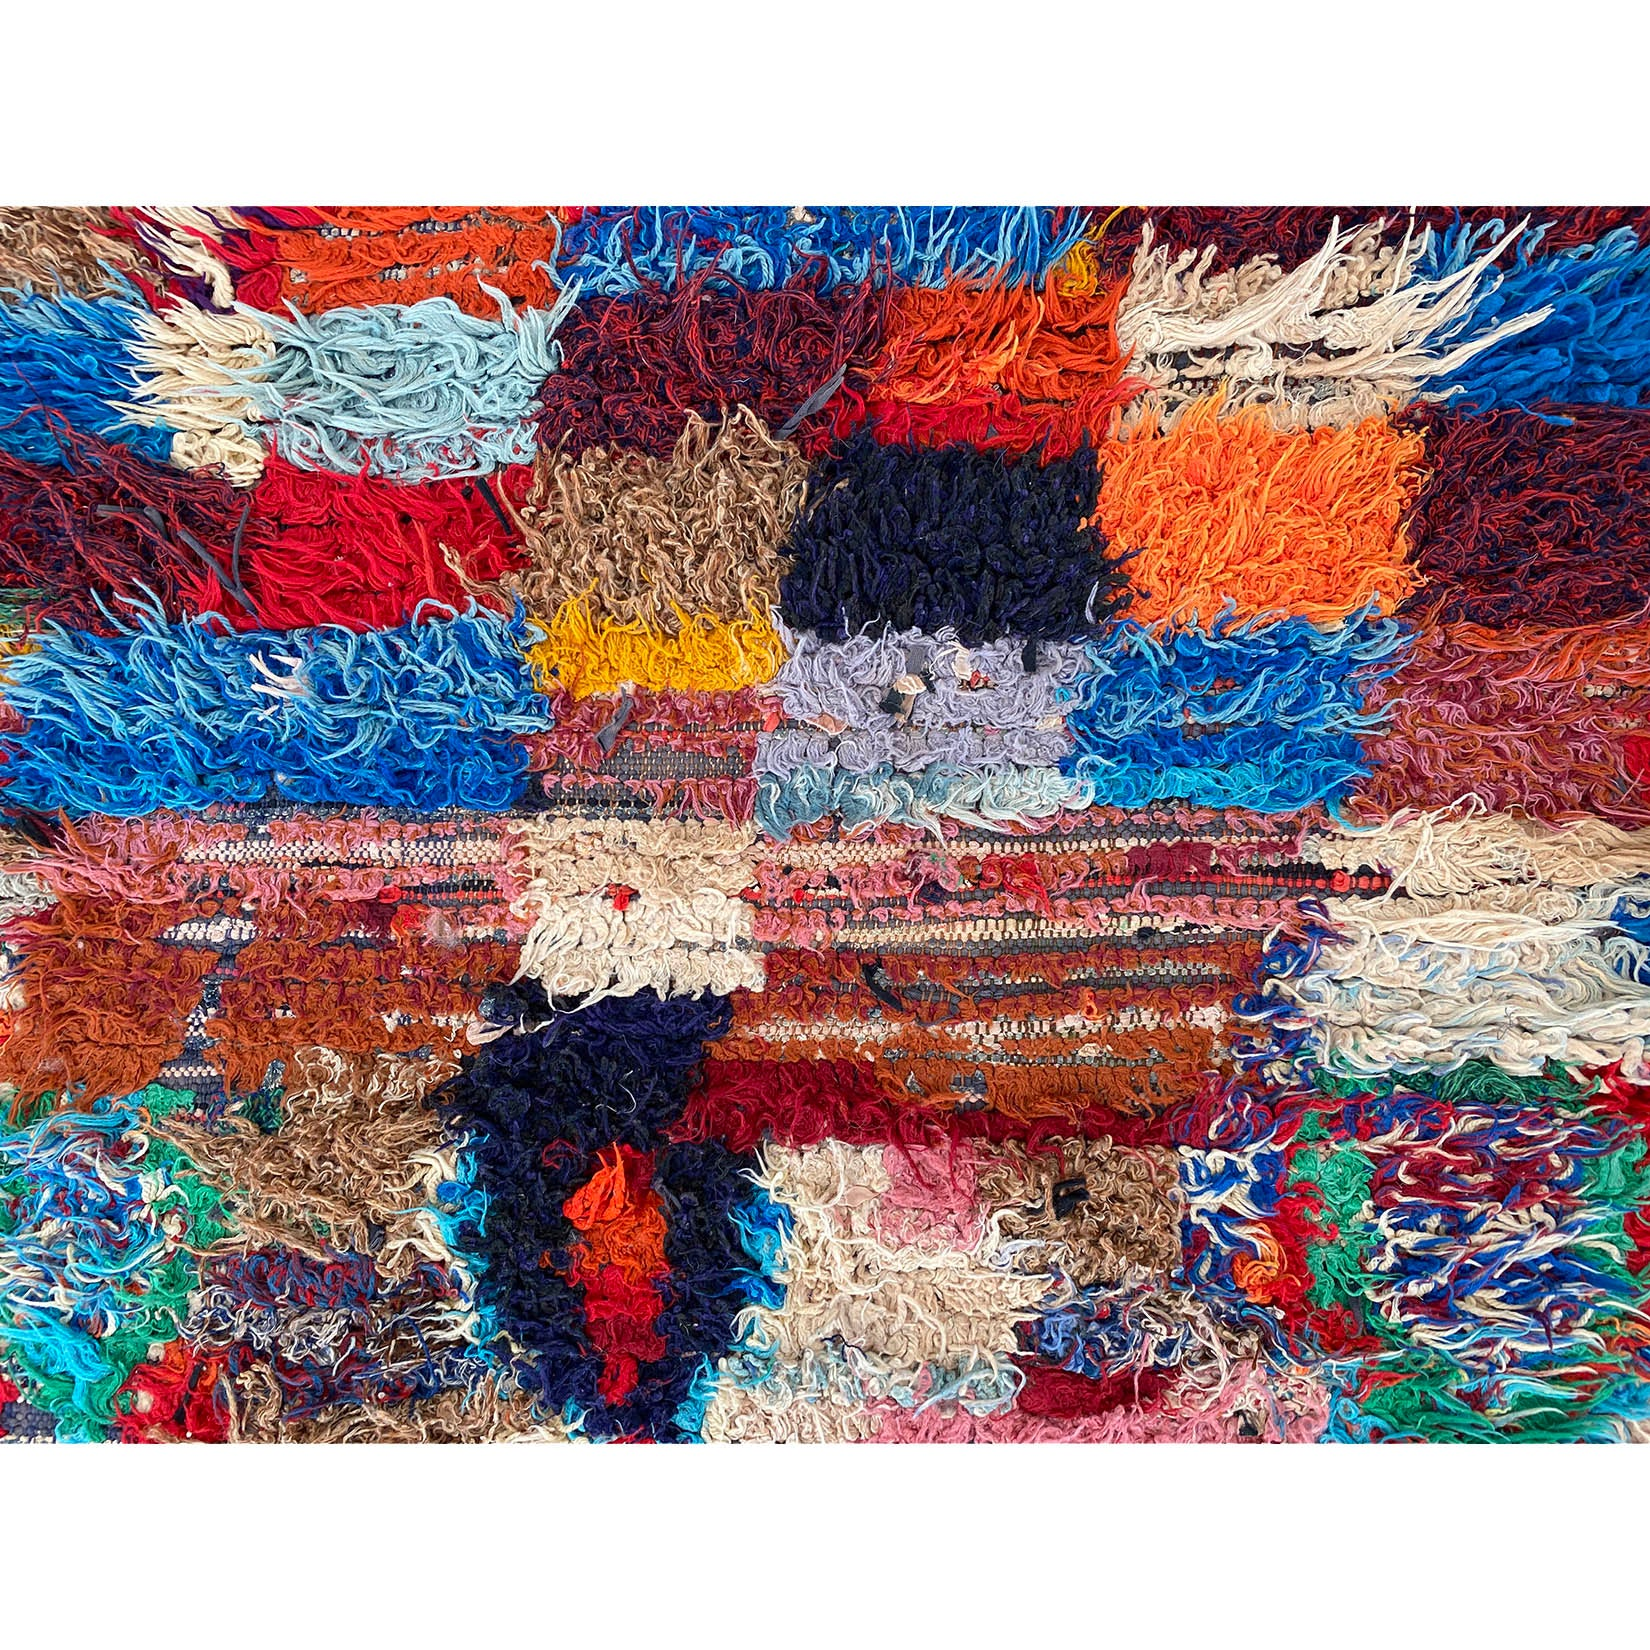 Medium sized colorful Moroccan berber rag rug - Kantara | Moroccan Rugs